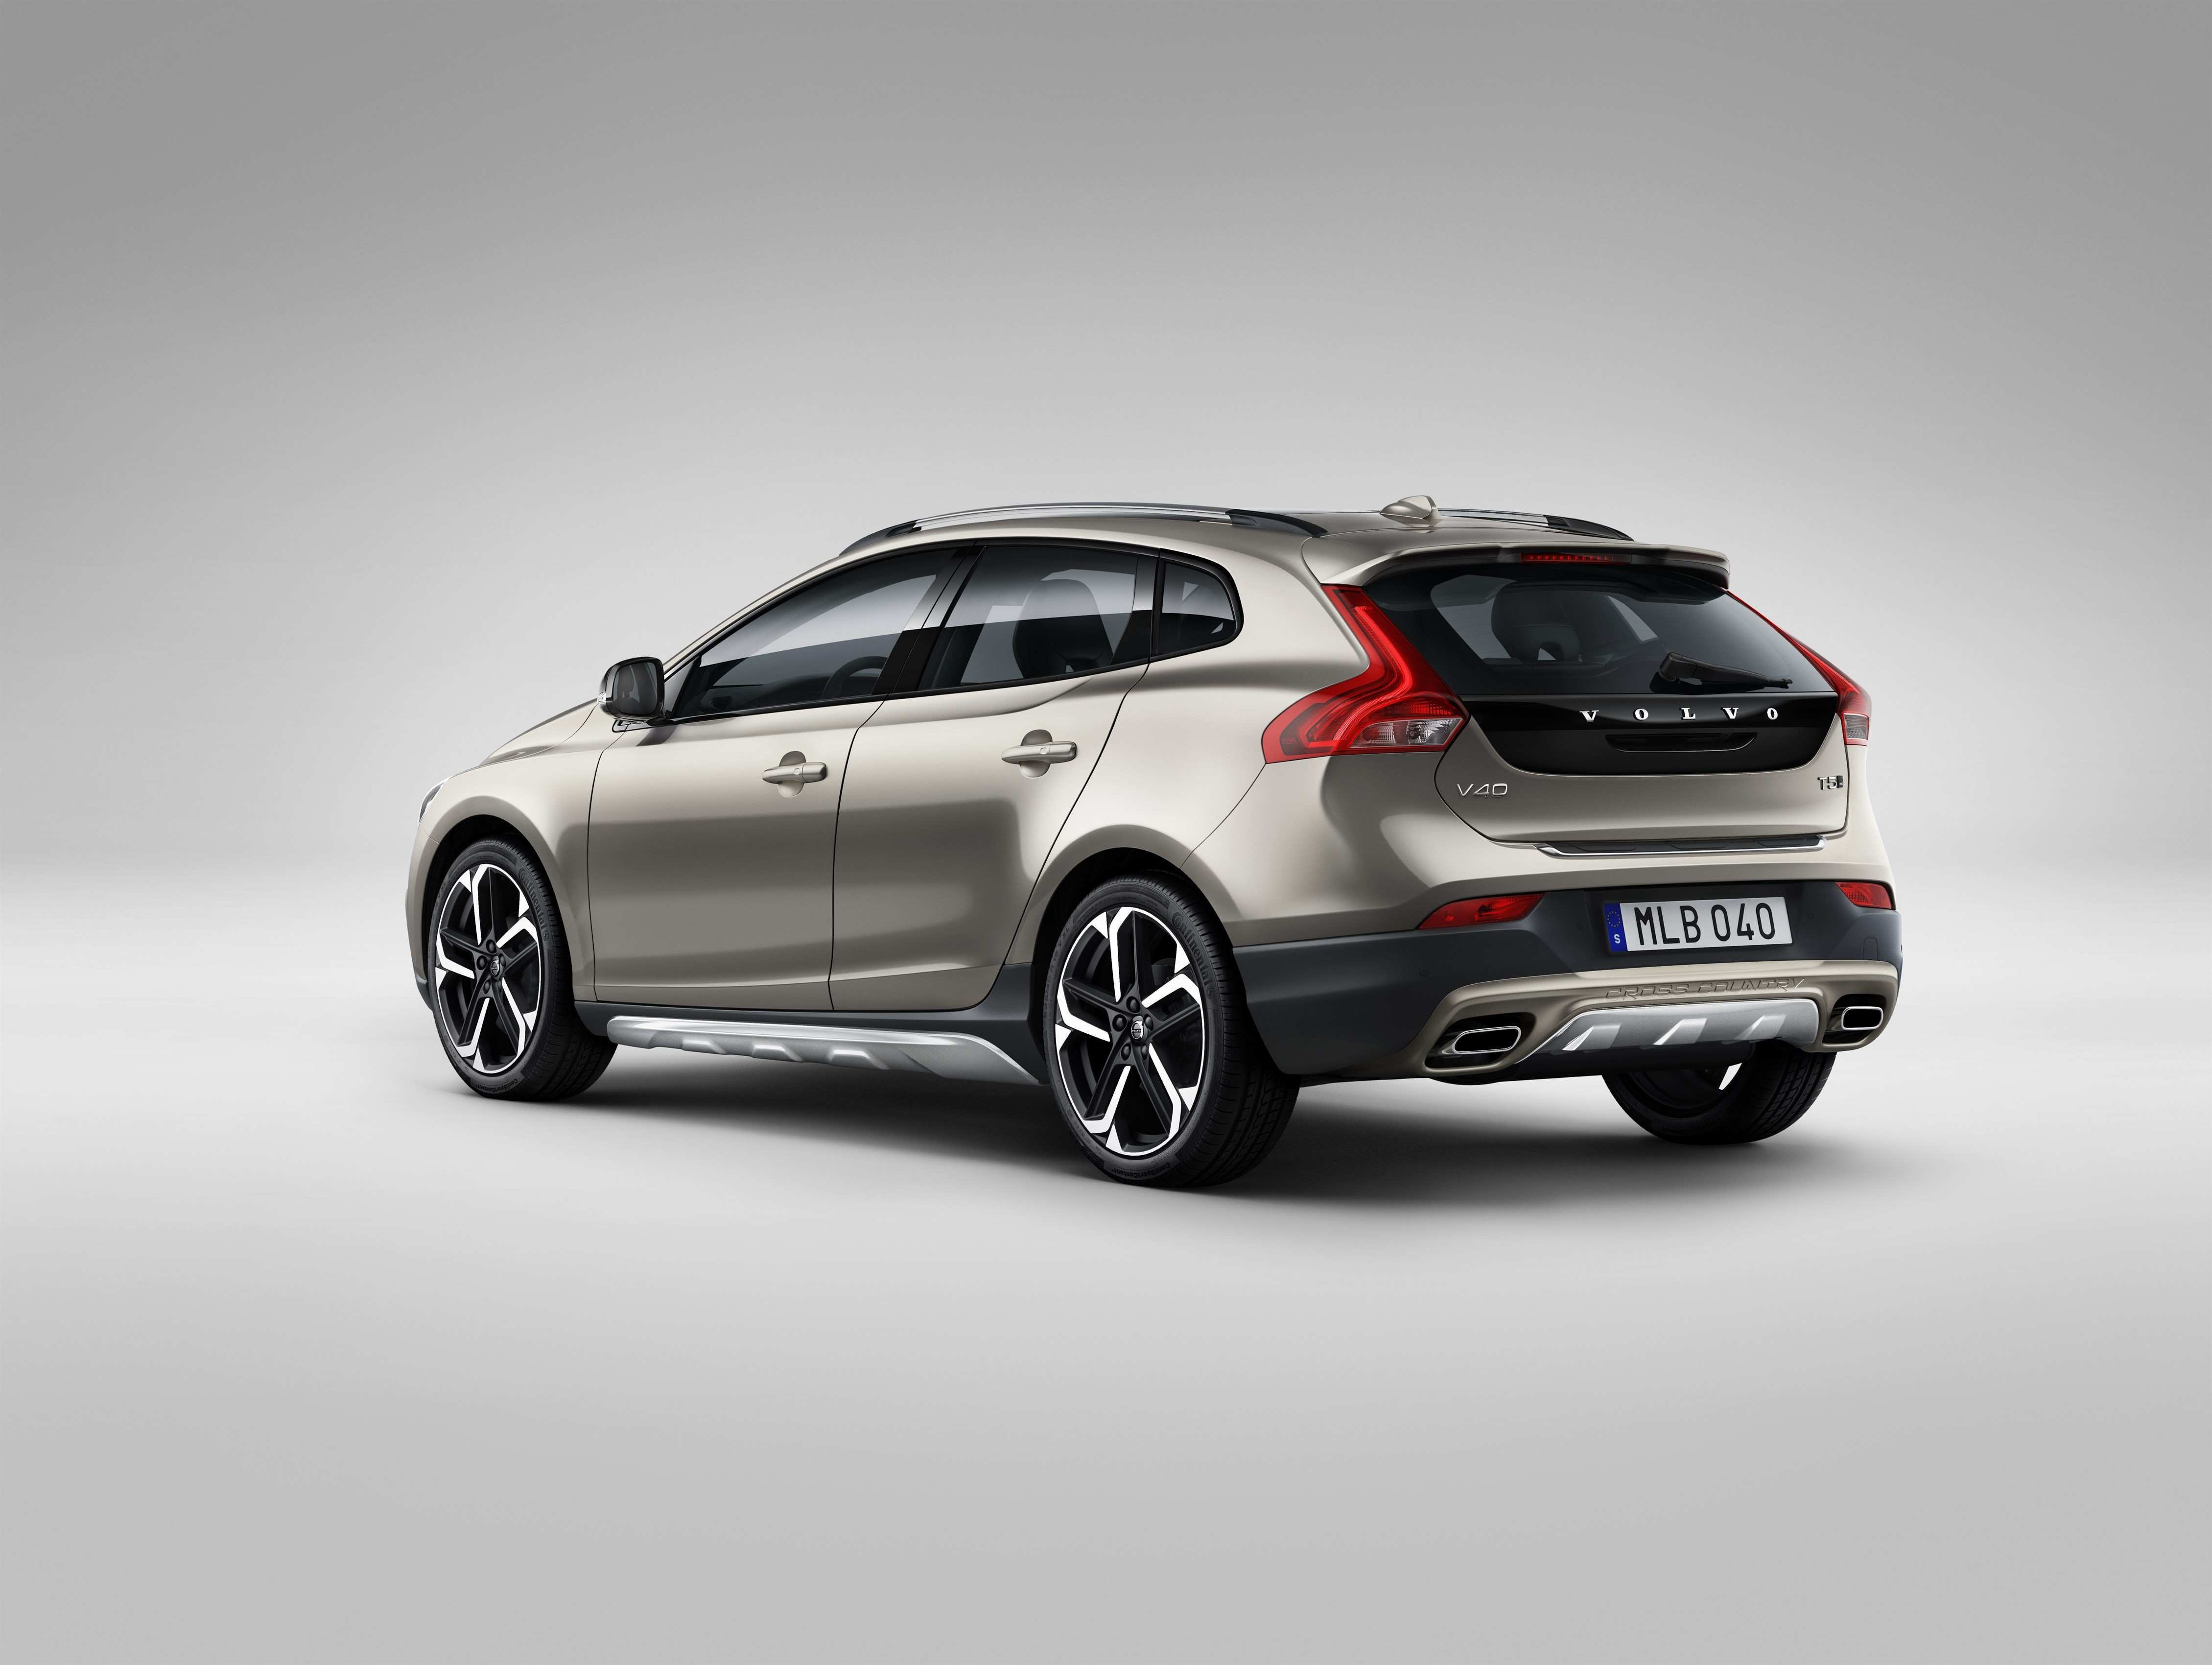 68 The Best Volvo 2019 V40 Performance And New Engine